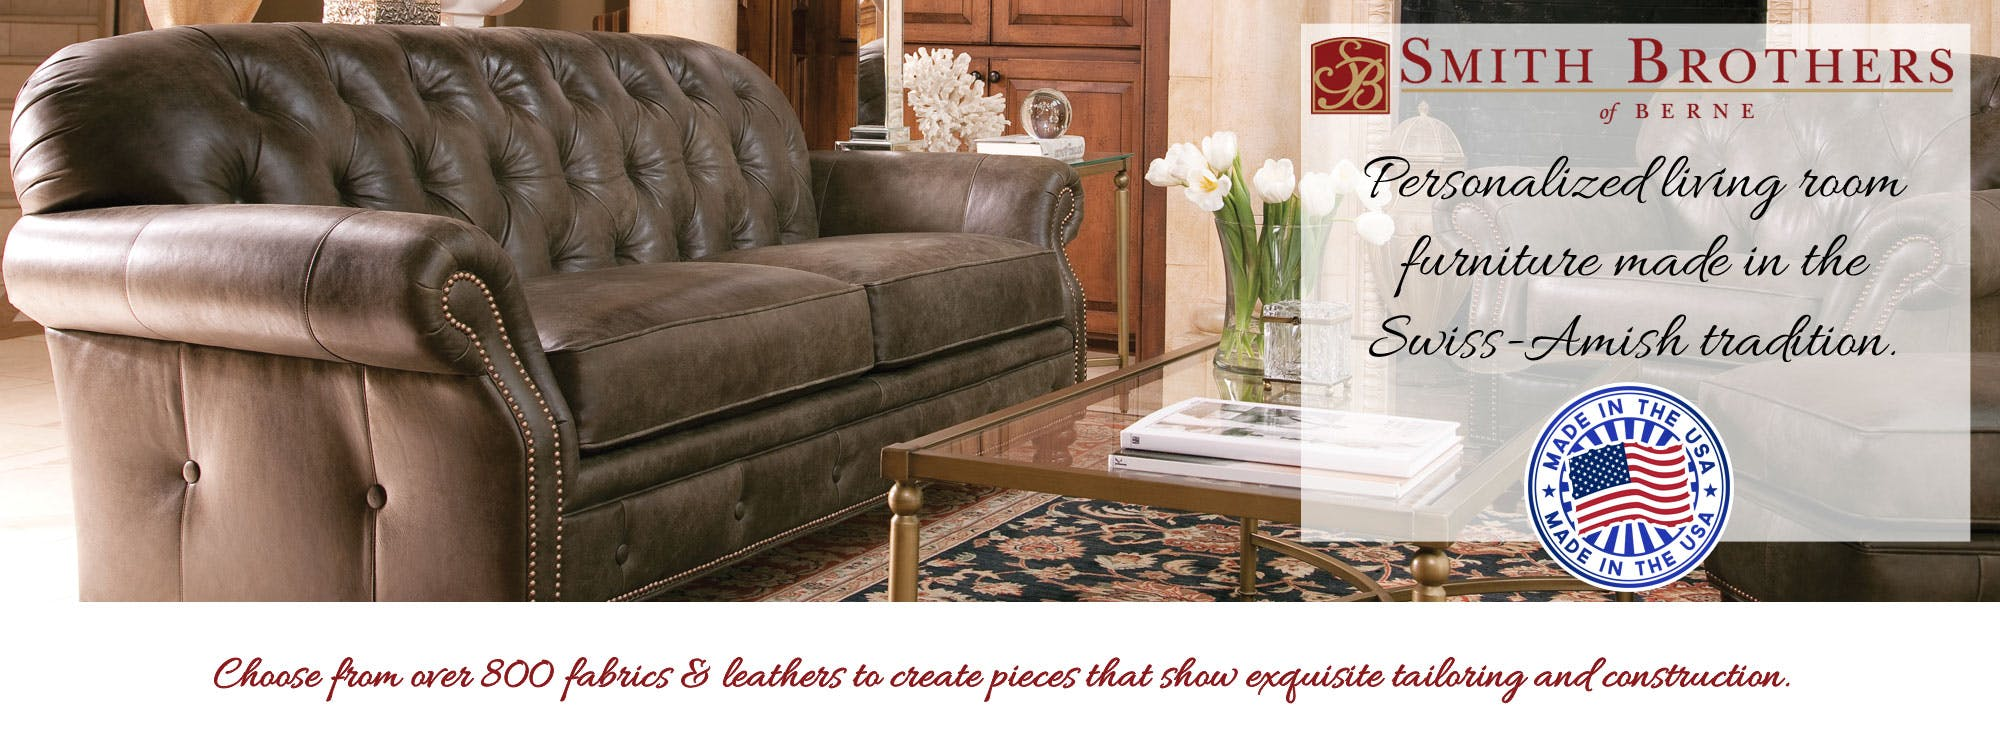 Shop for Smith Brothers furniture in Cincinnati and Dayton OH. Cincinnati Furniture    Dayton Furniture    Furniture Fair